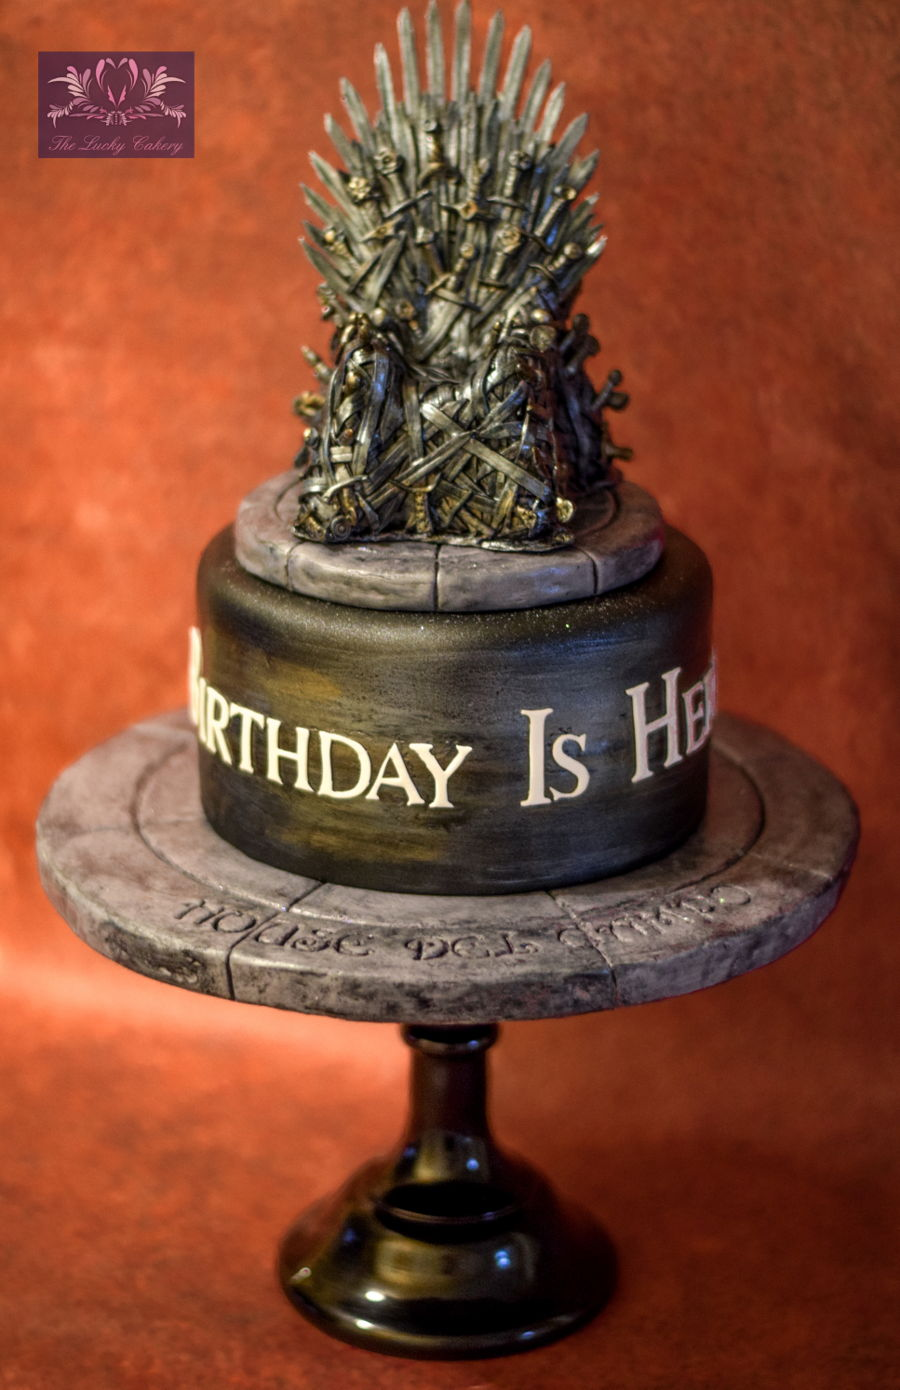 Game of thrones chair cake - Totally Edible 8 Inch Tall Throne Chair Topper With A Cookie Base